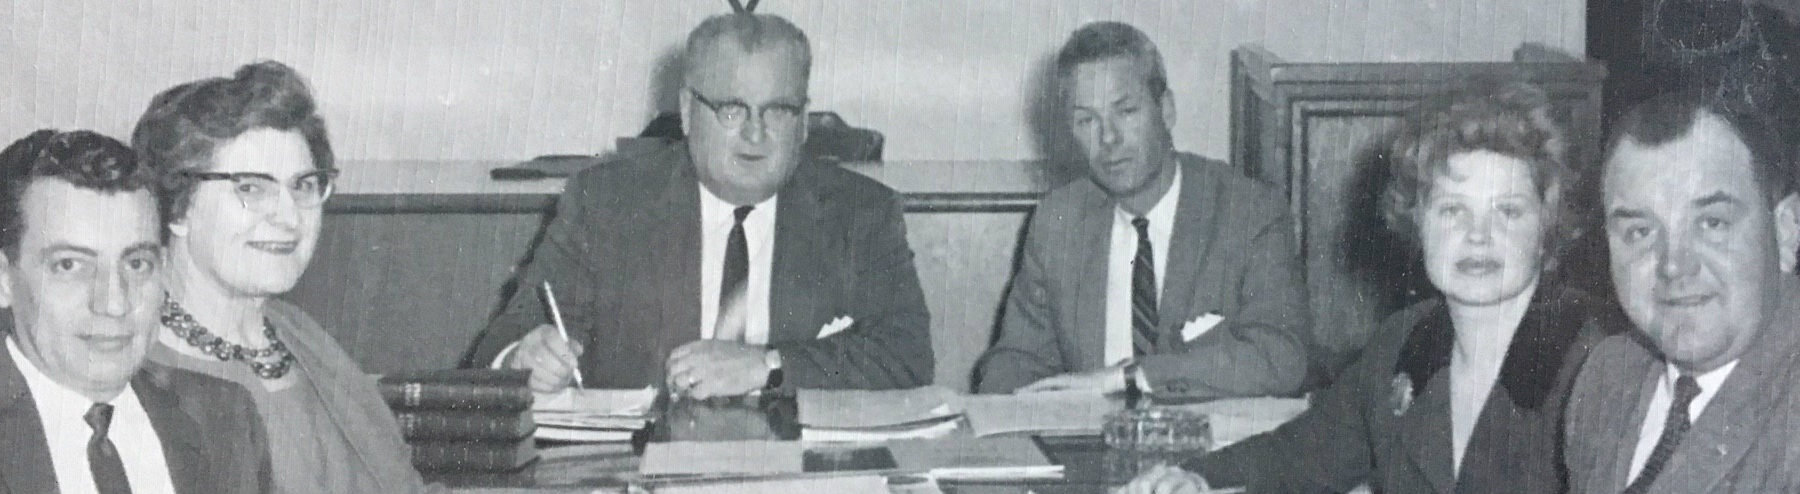 black and white image of reeve and council and clerk (6 people) circa 1966 seated looking at camera